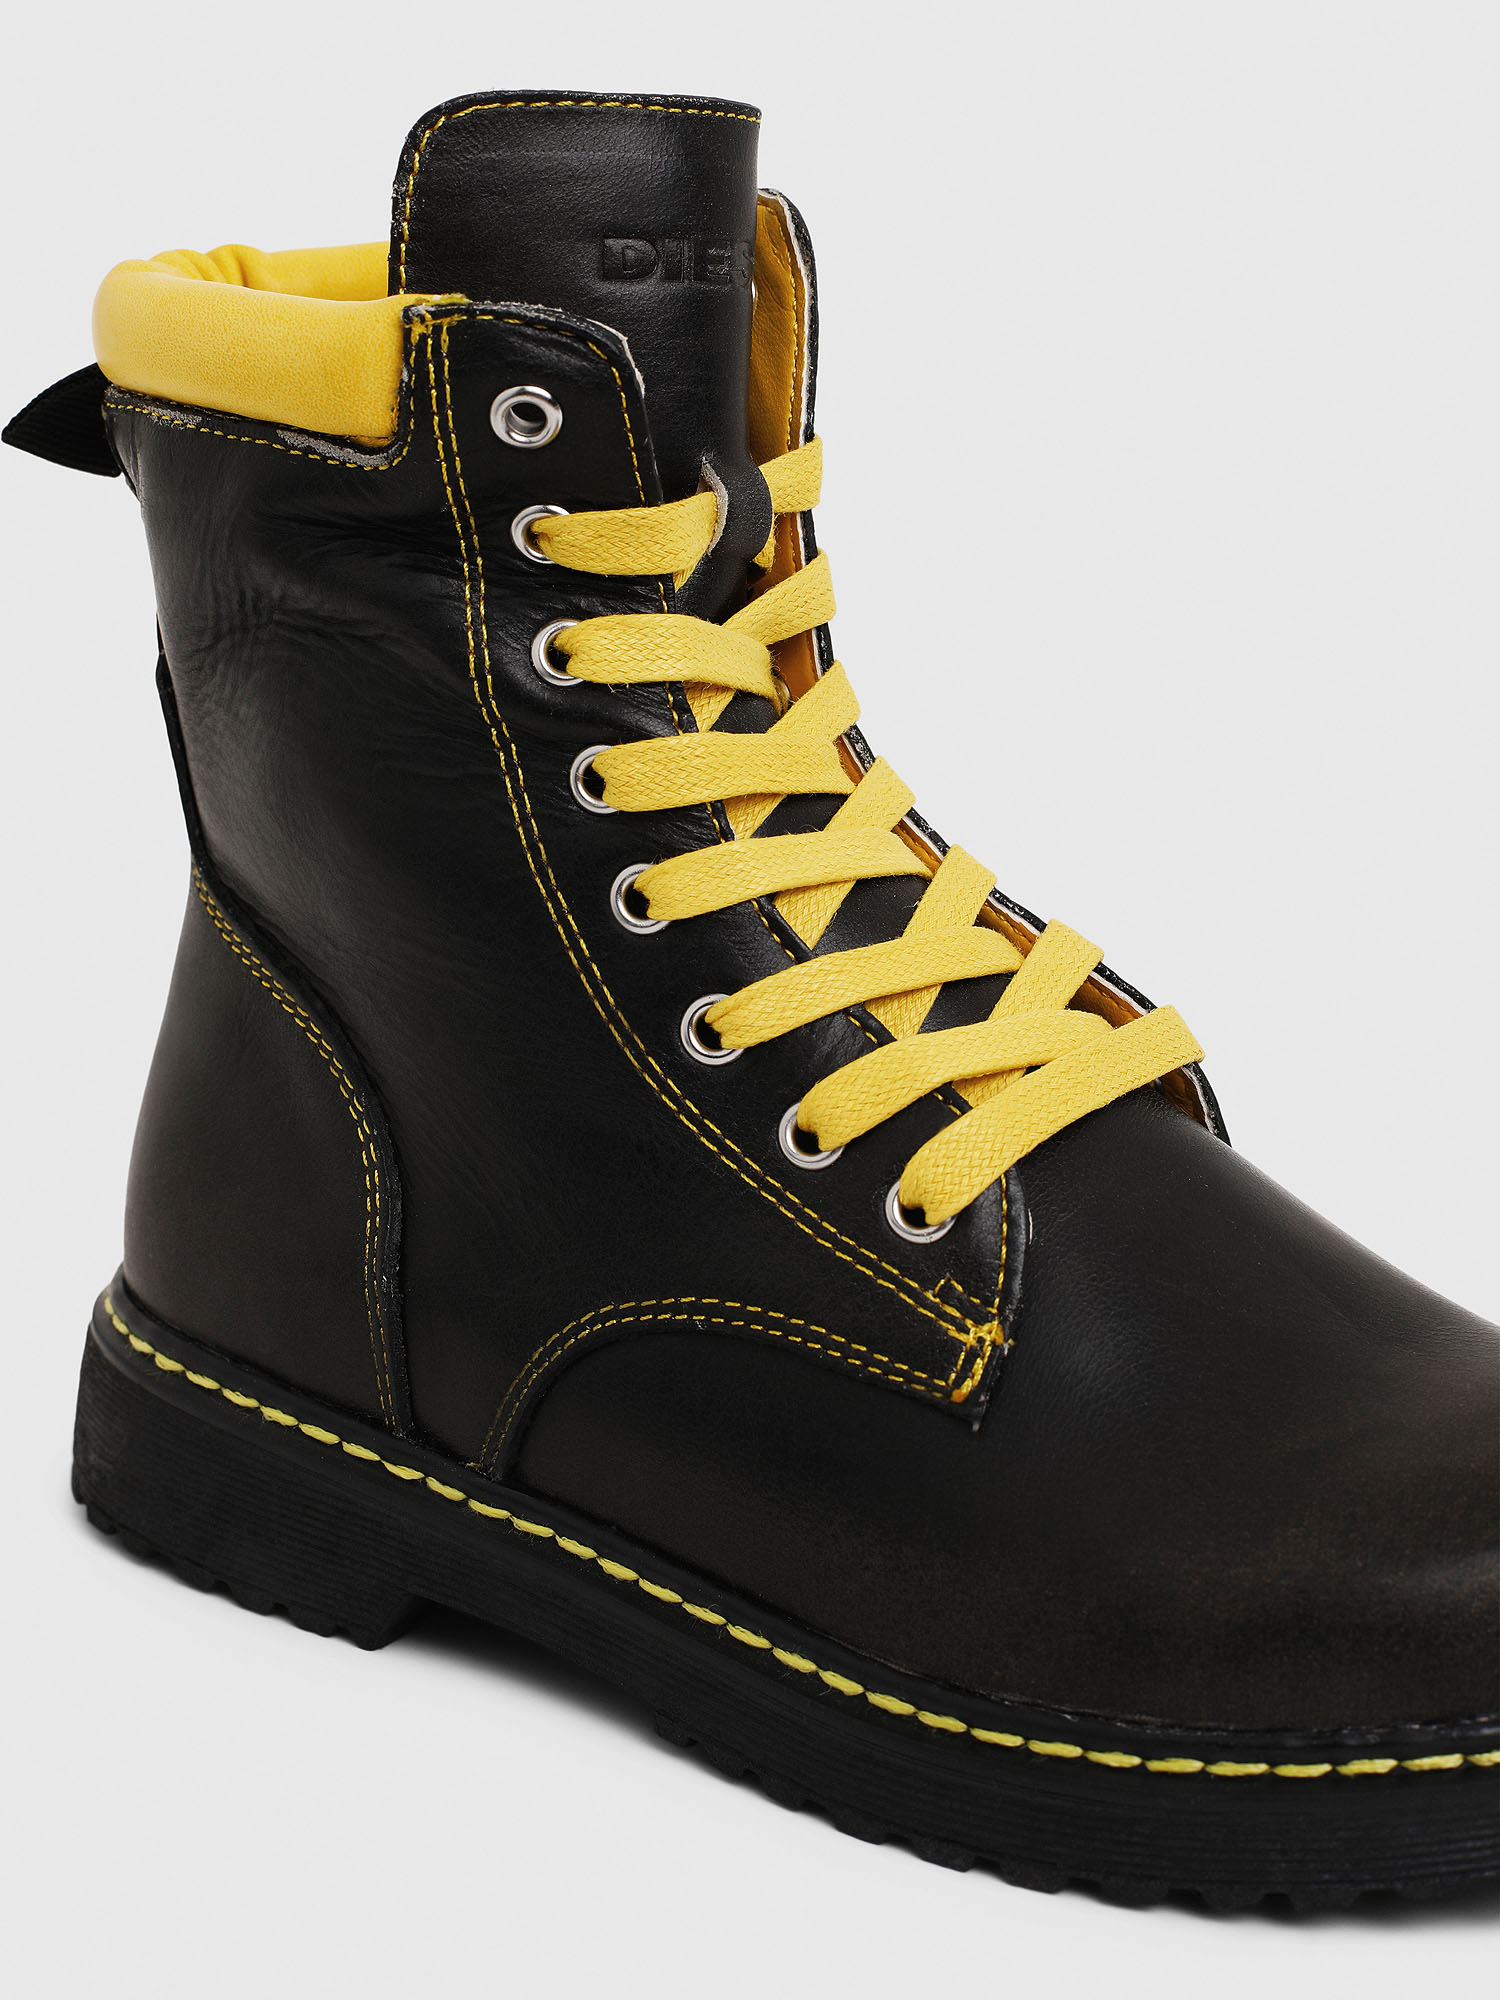 Diesel - HB LACE UP 04 CH,  - Calzado - Image 4